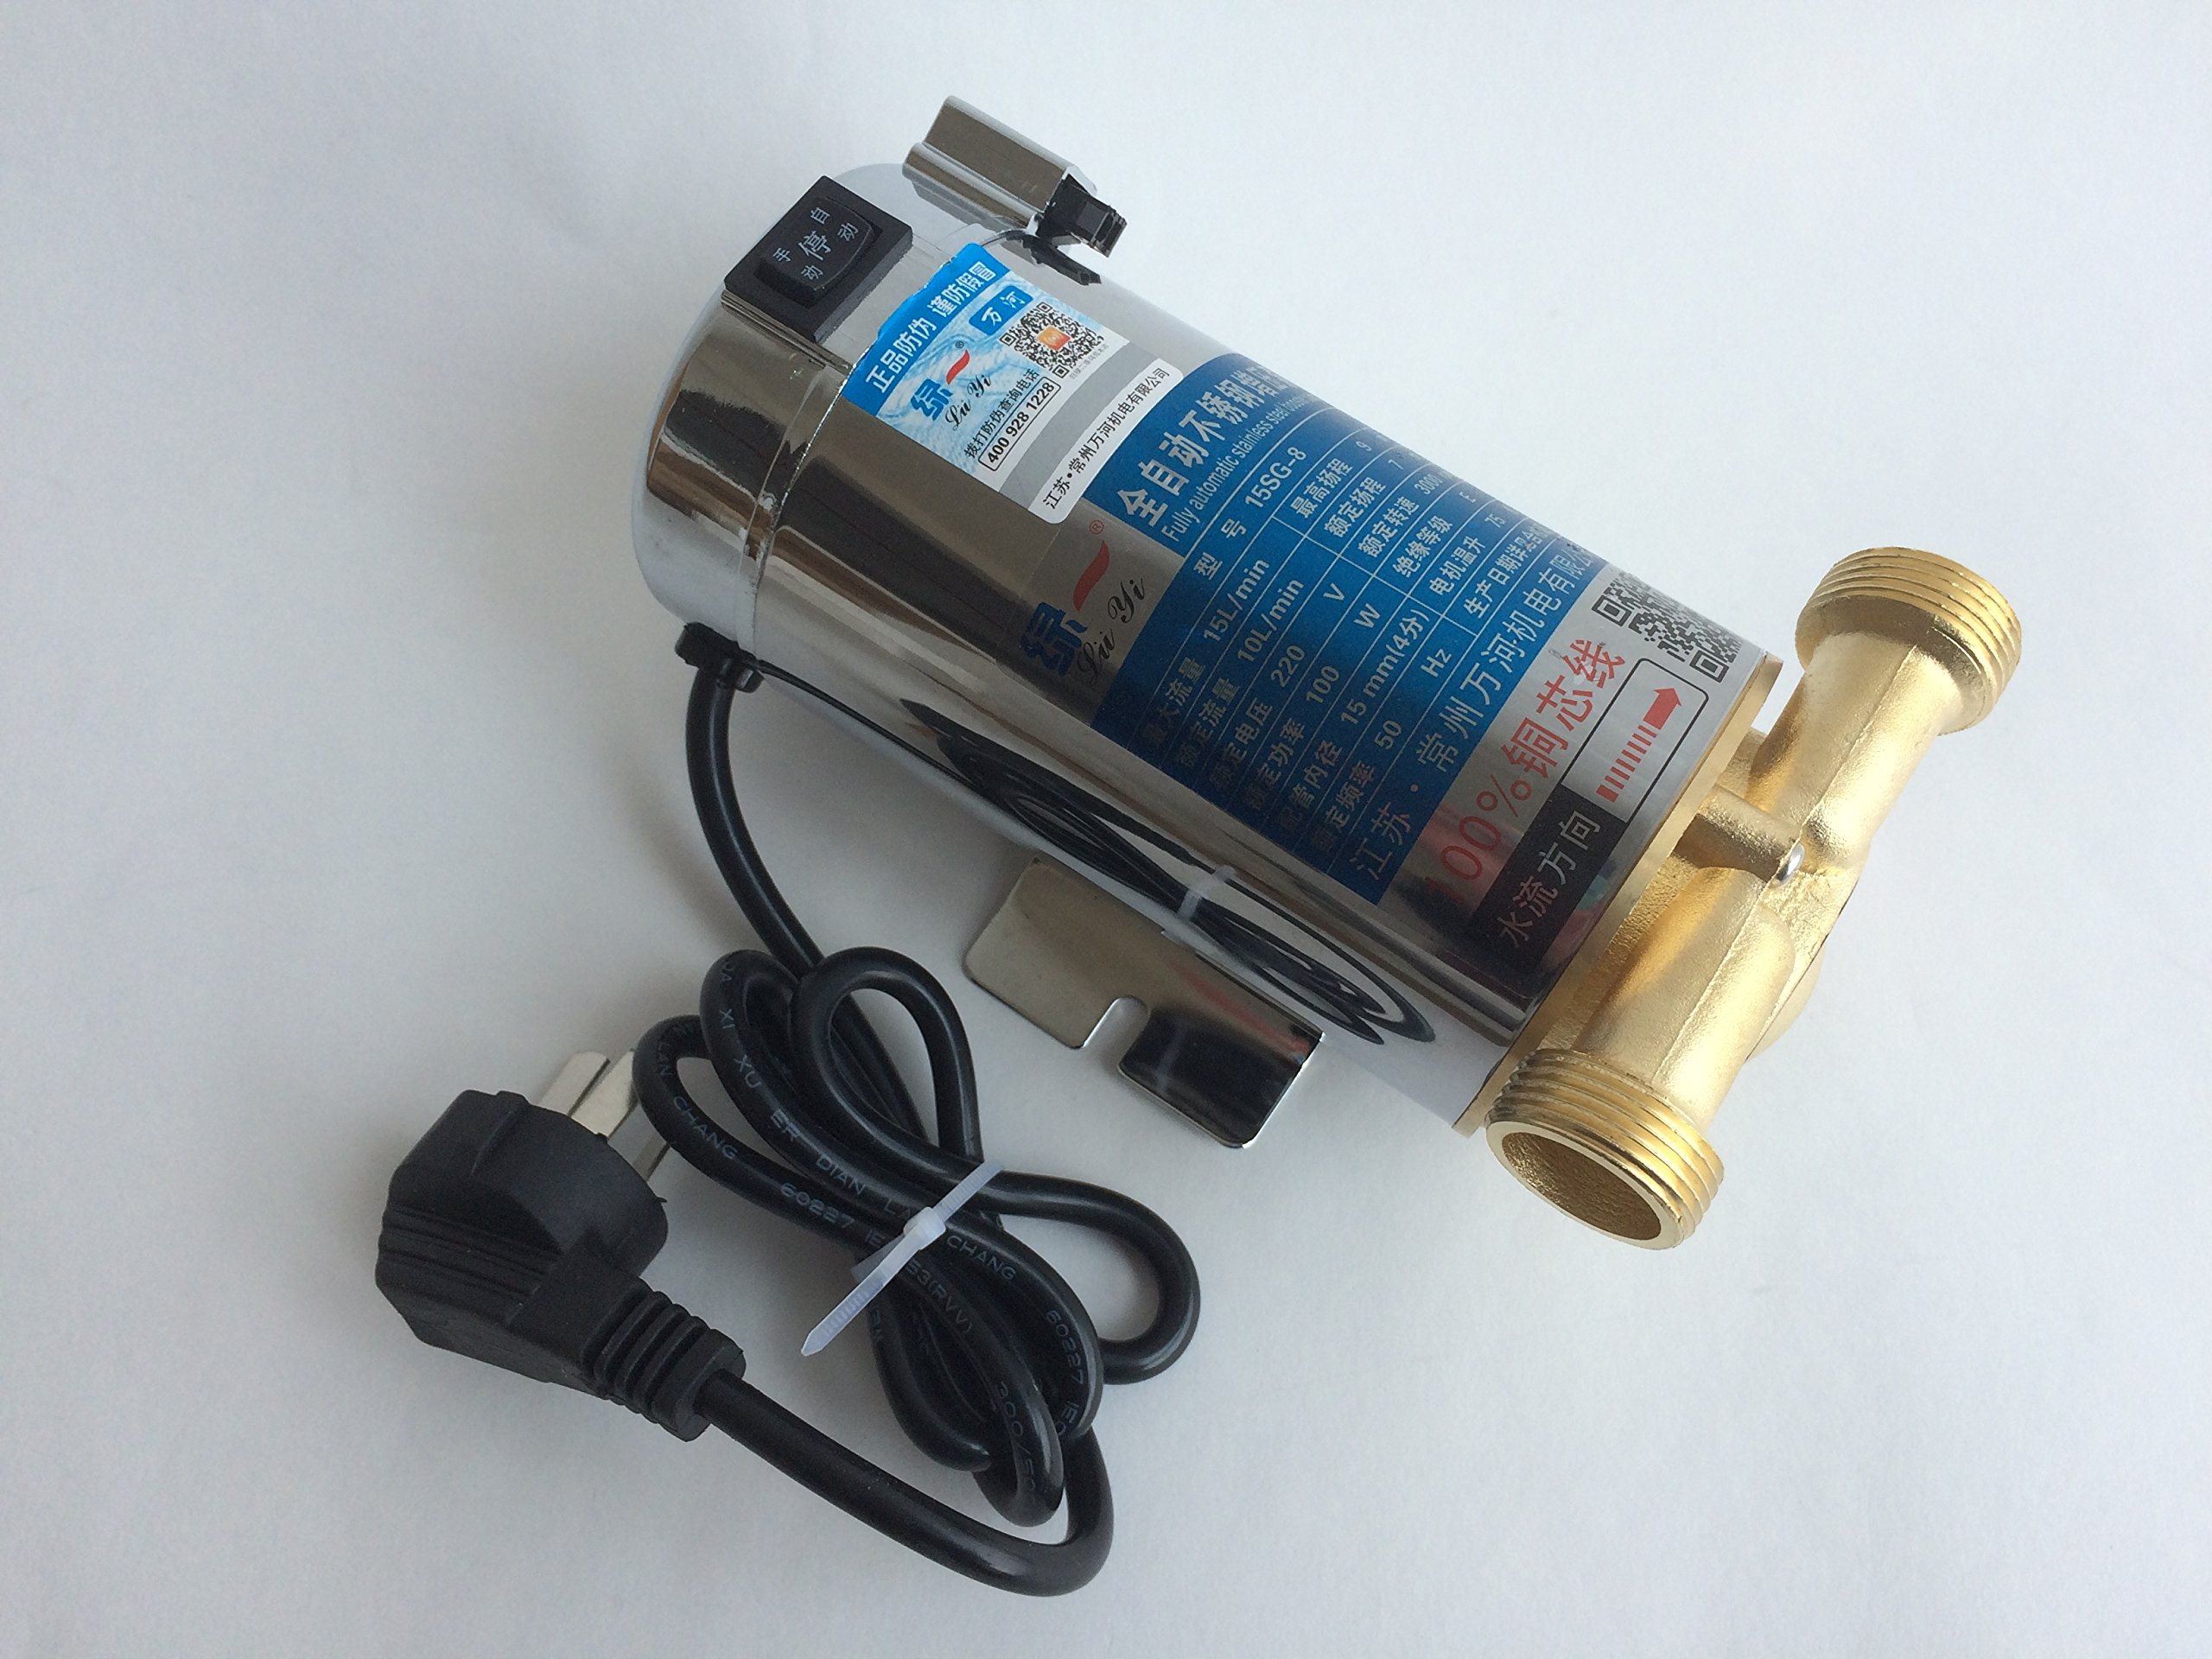 100W 10L/Min 220V 3000RPM Automatic Stainless Steel Gas Hot Water Heater Pressure Booster Pump